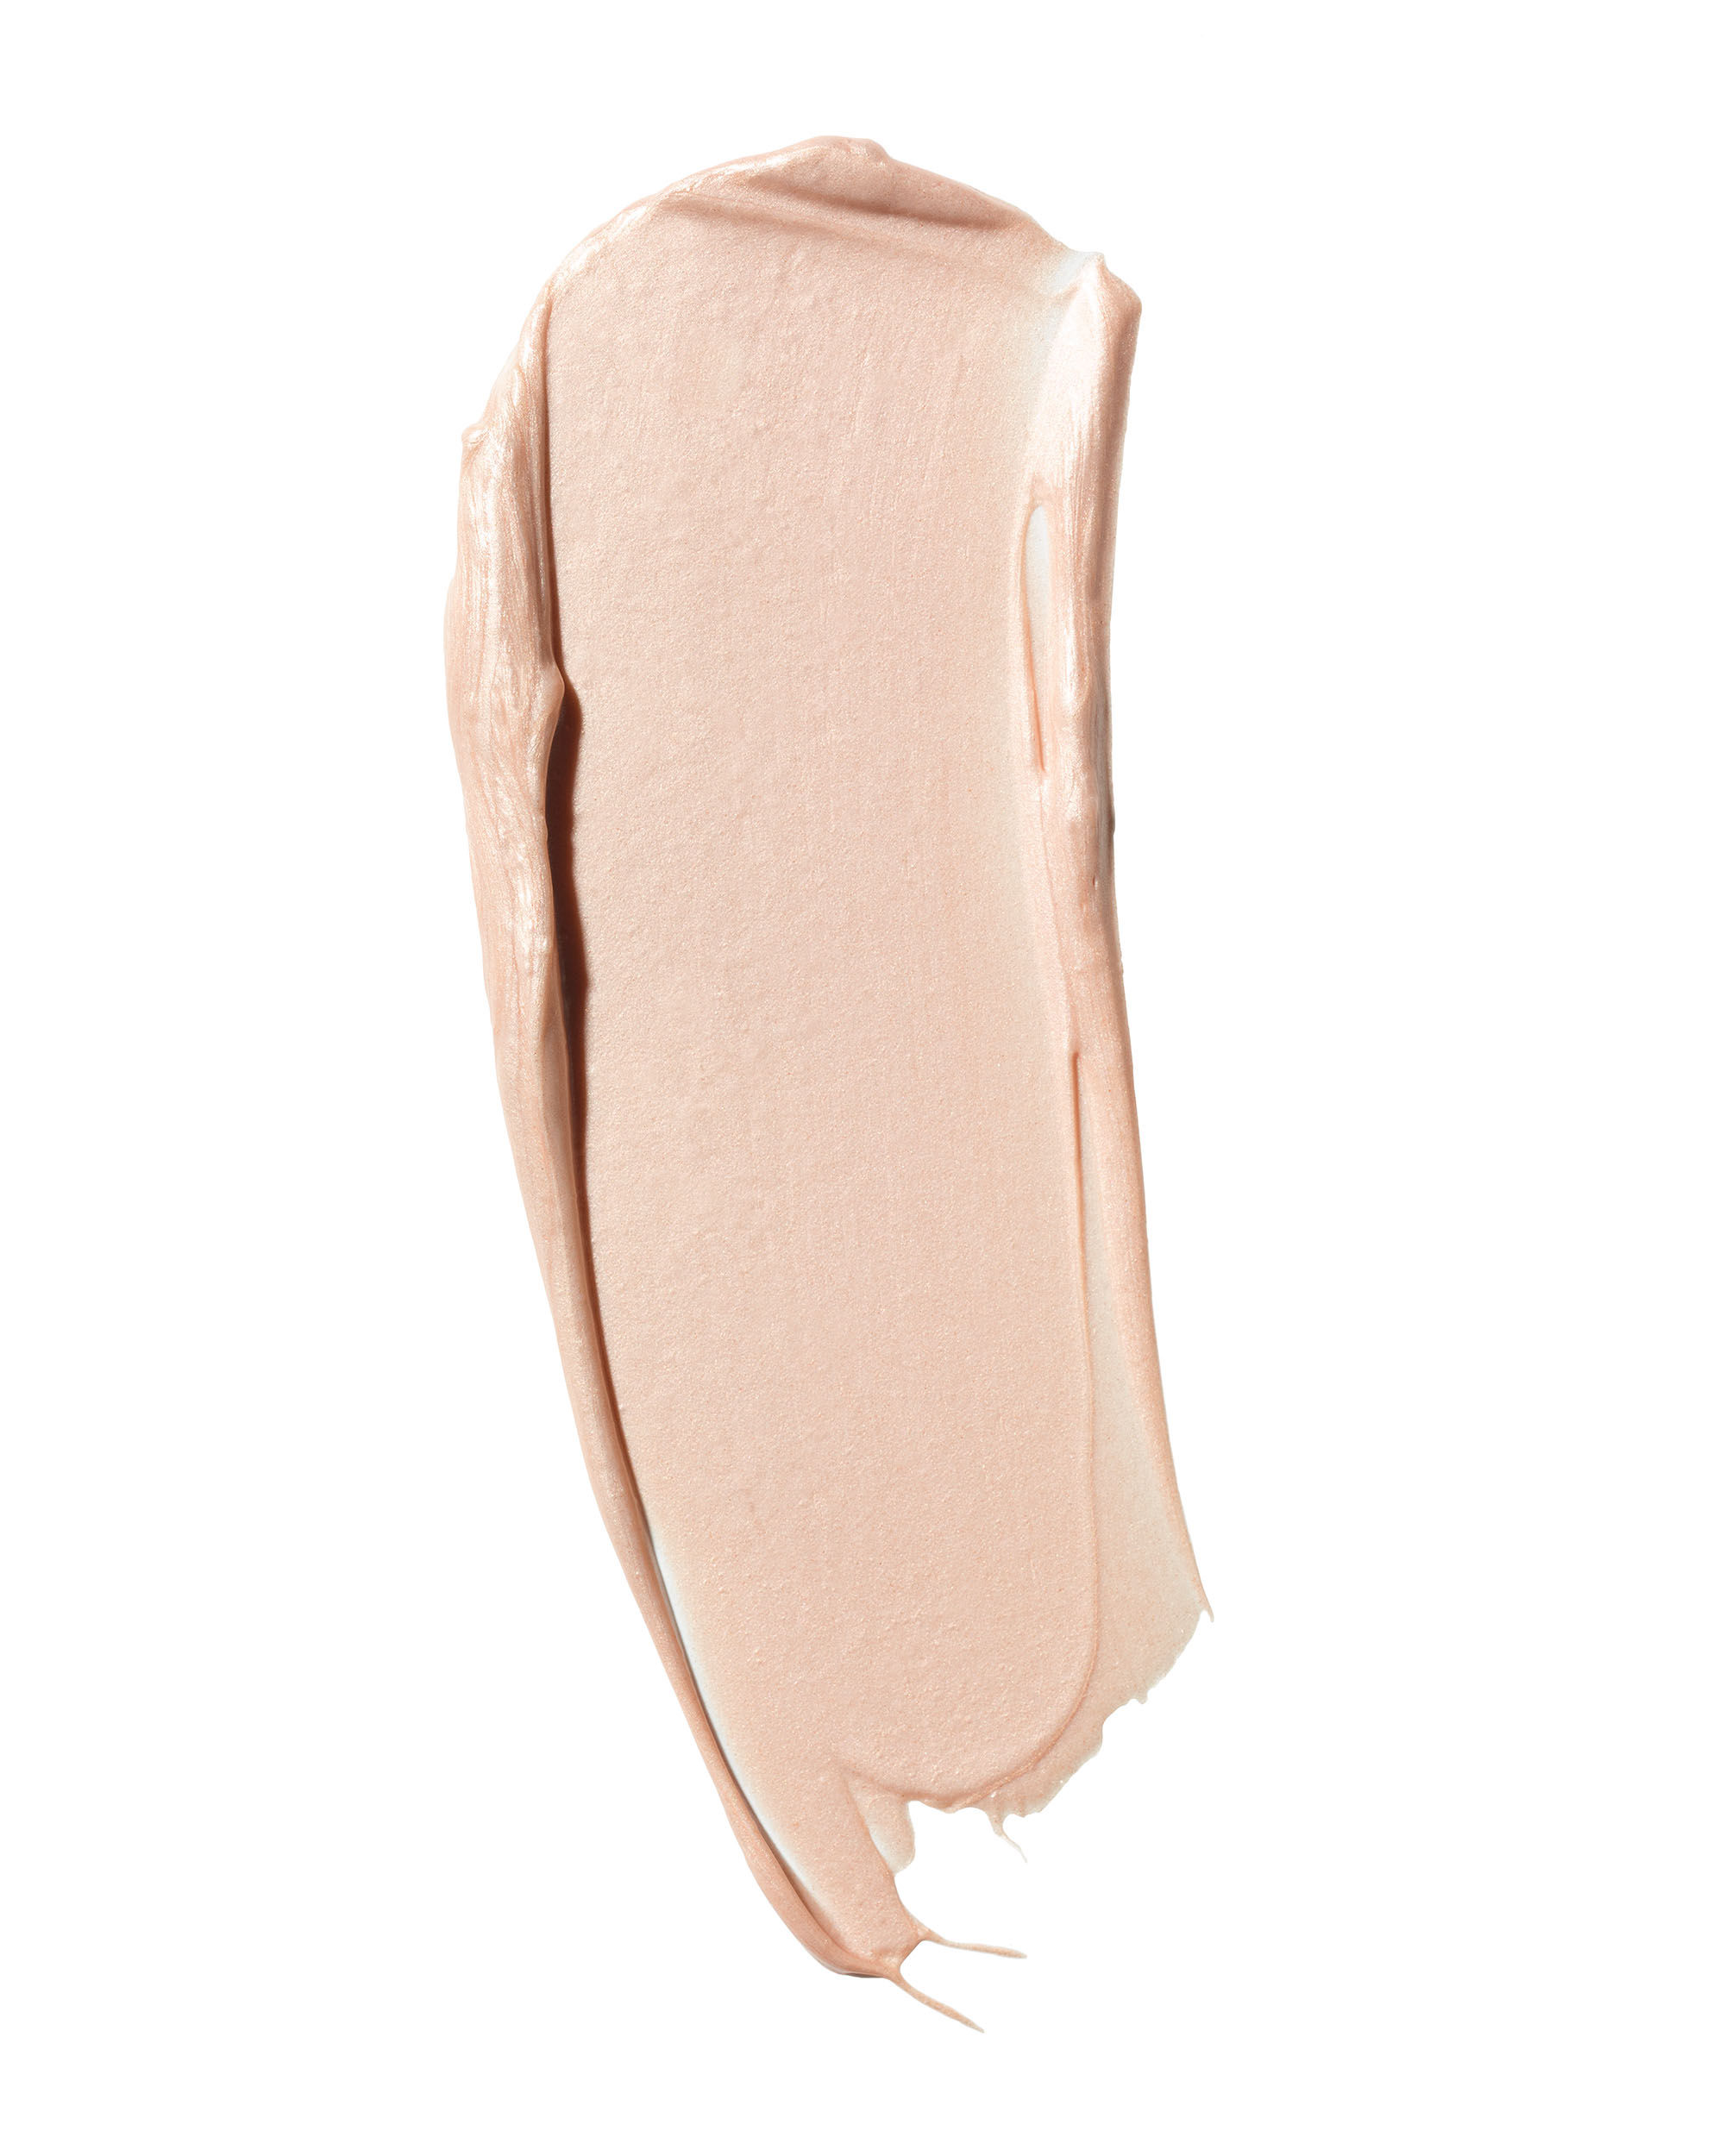 Nude Glow - Pearlescent Pink